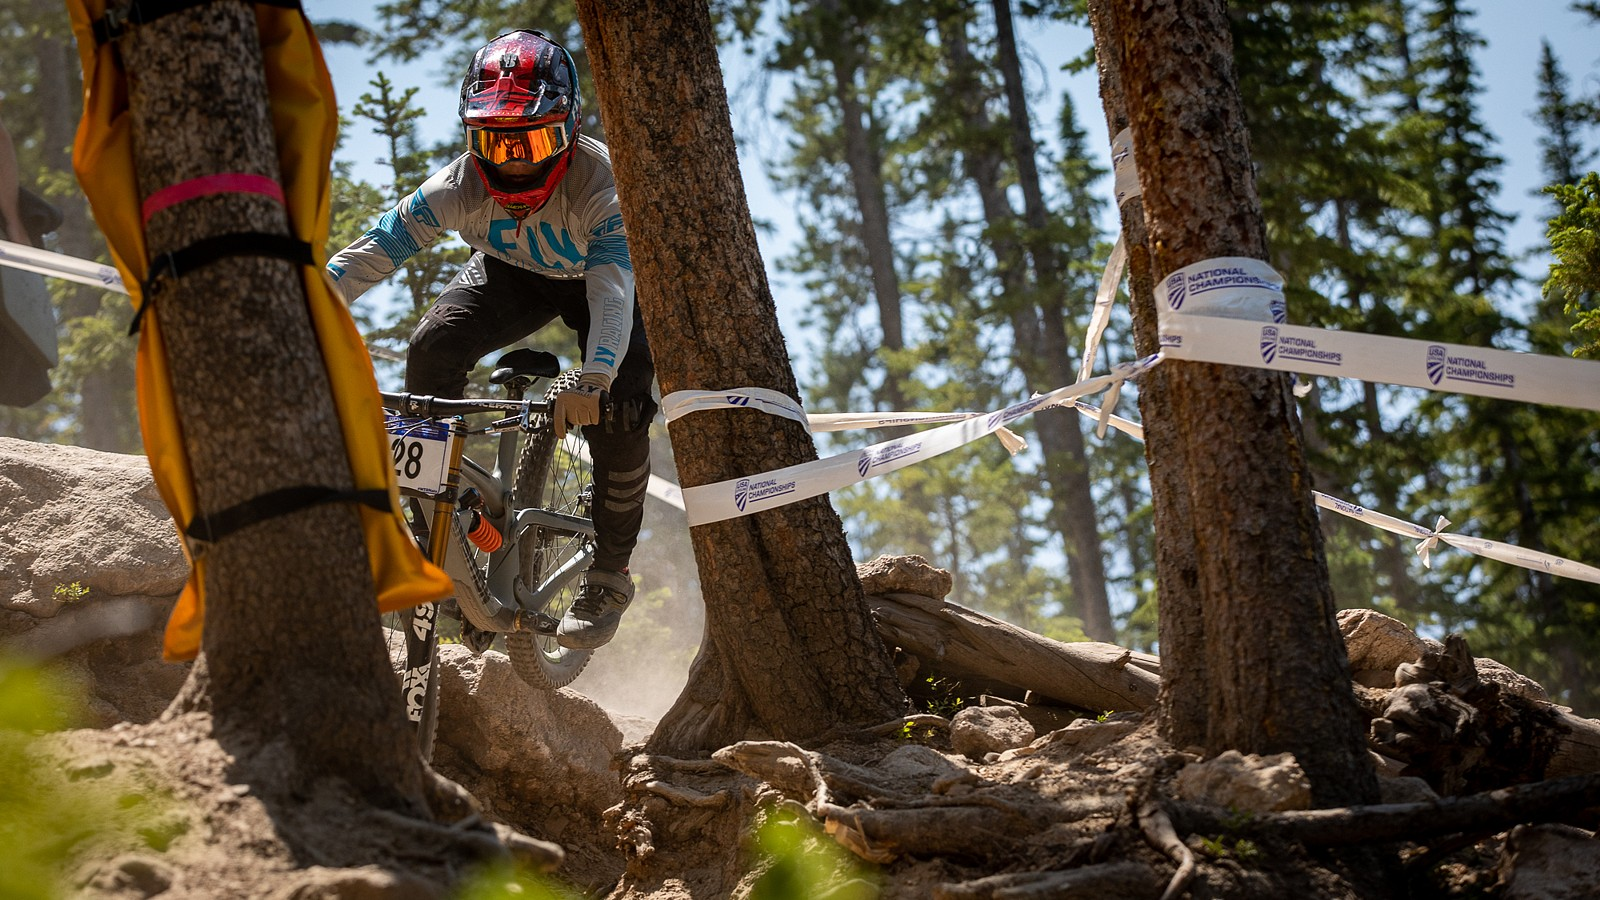 Cameron Mader - US National Champs Downhill Photo Blast - Mountain Biking Pictures - Vital MTB